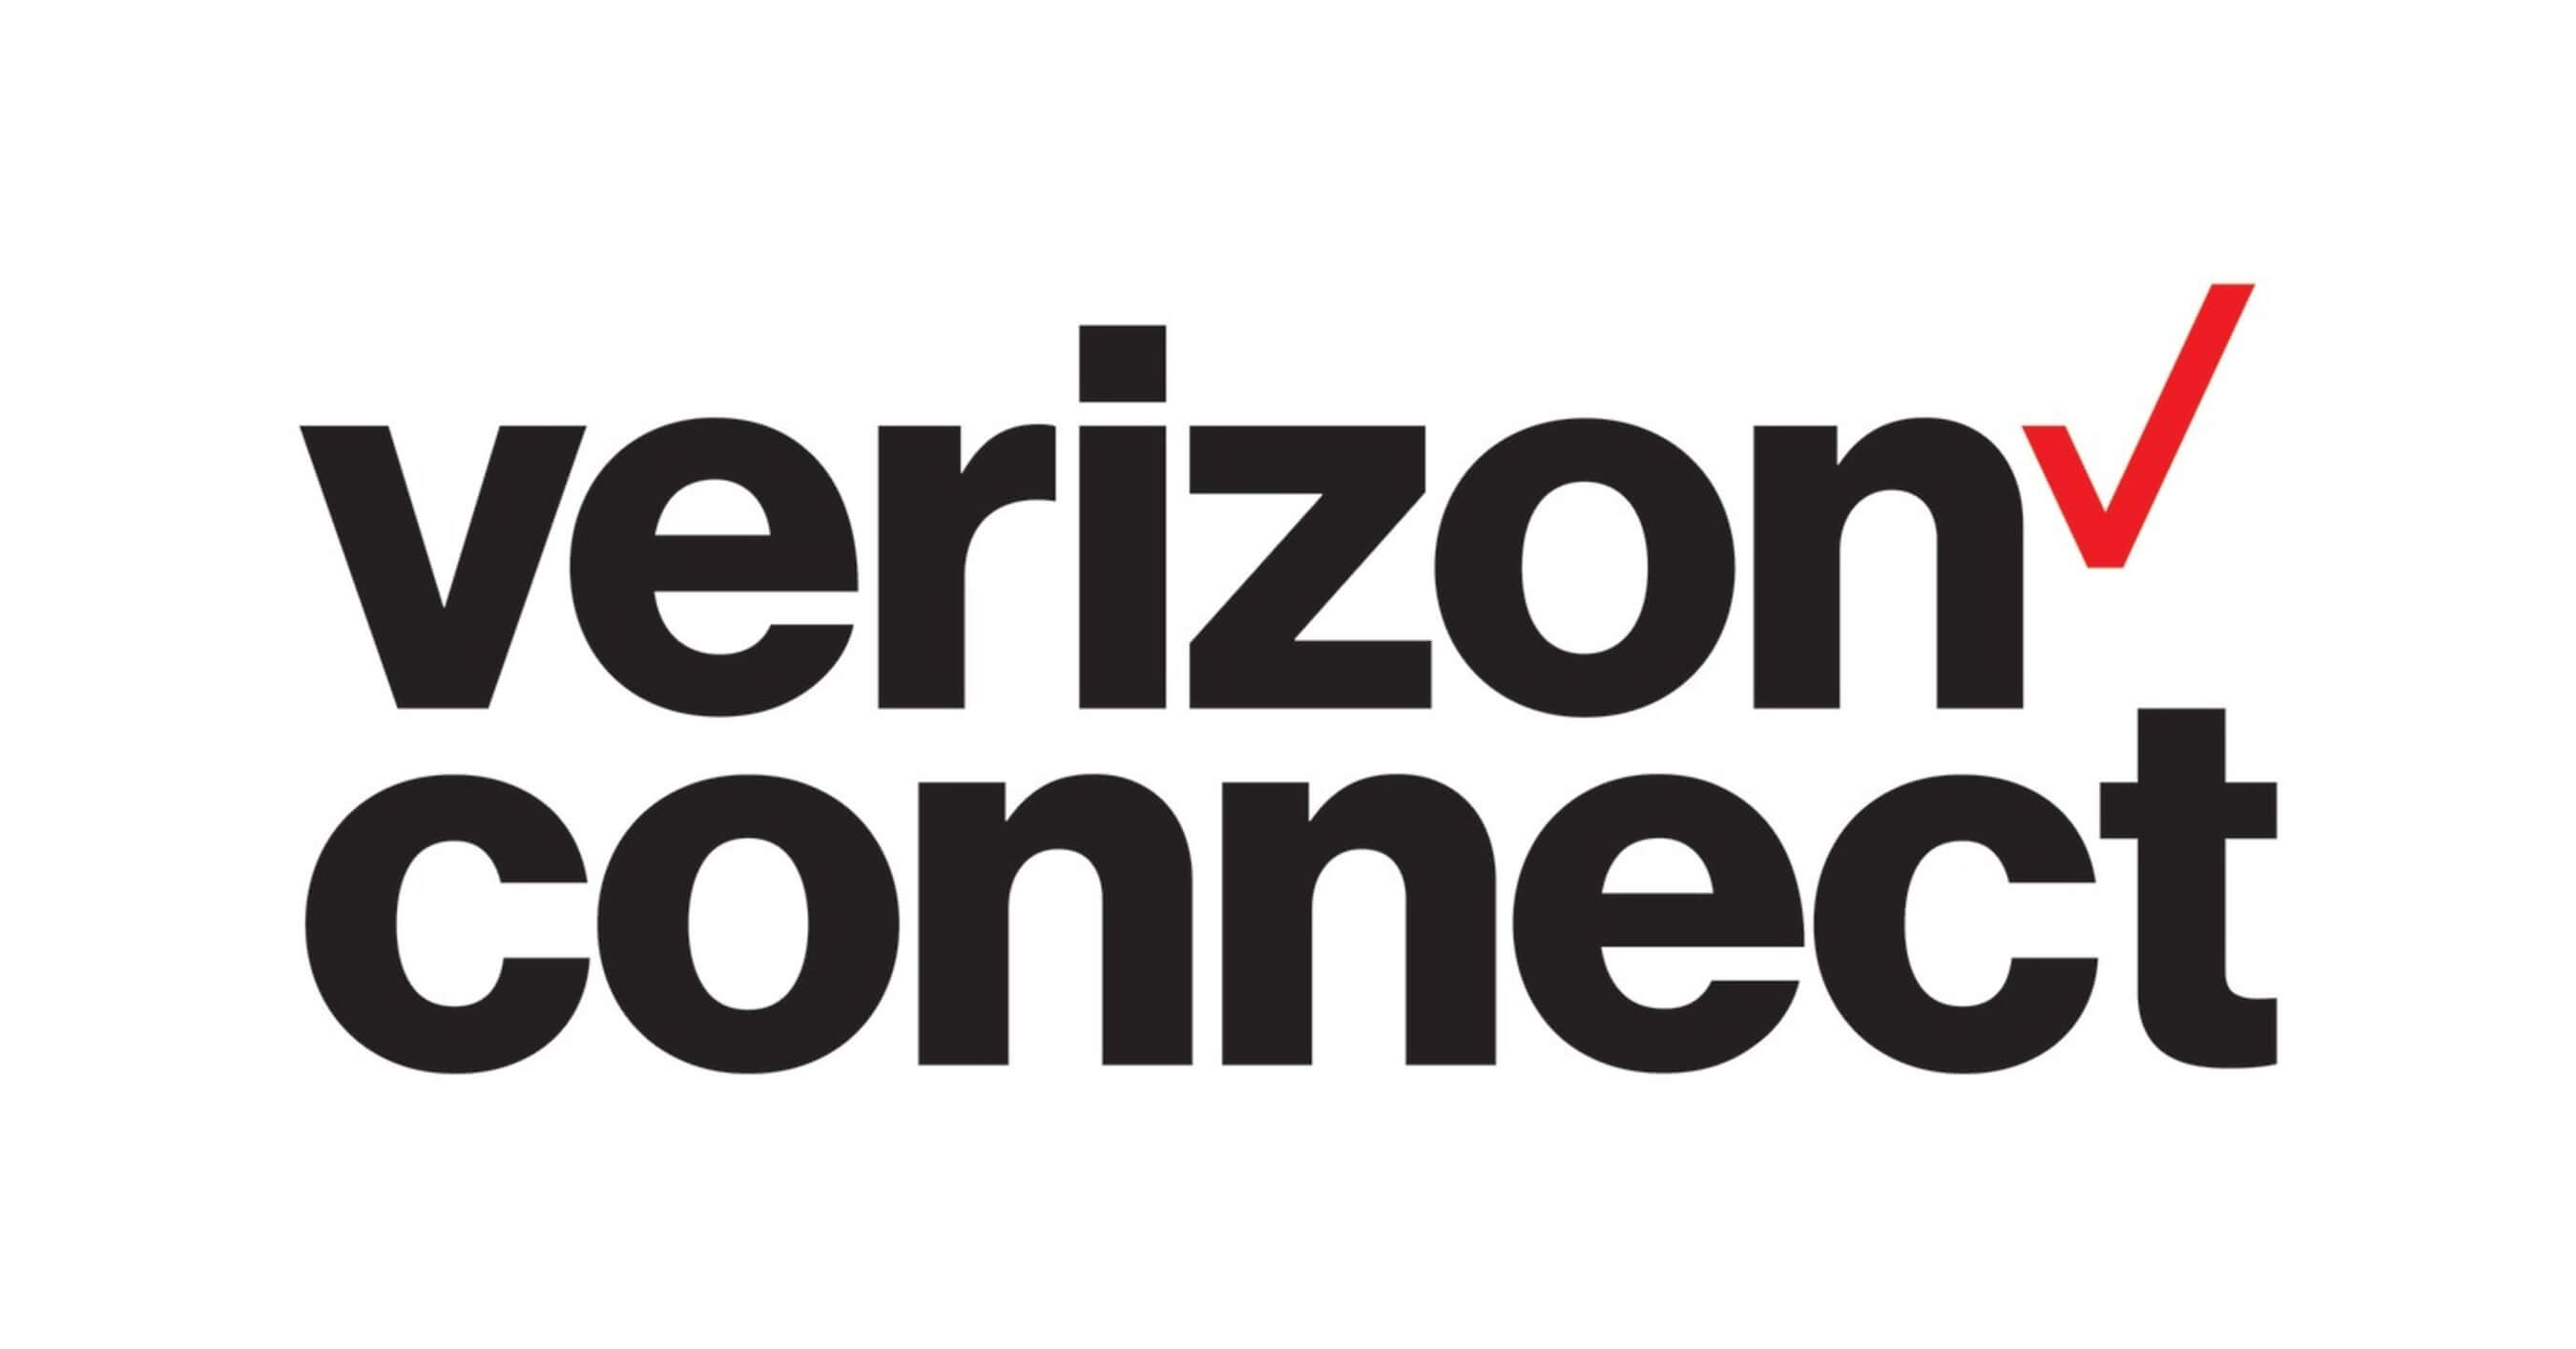 Verizon Logo - Verizon Connect Logo